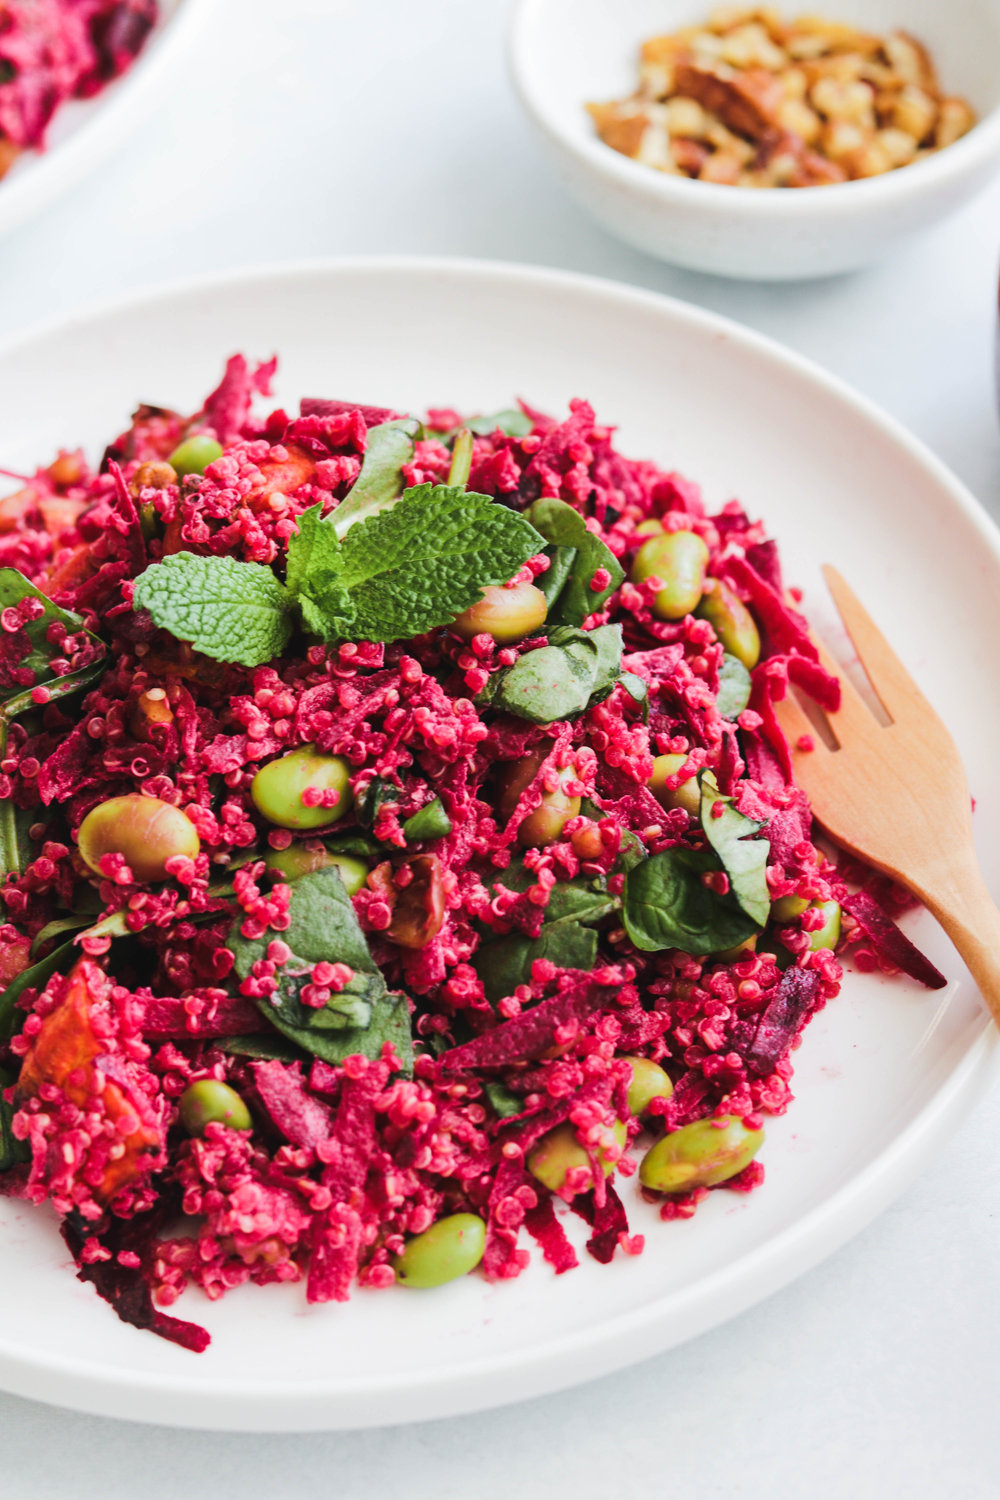 Beet Salad with Quinoa and Sunflower Seed Dressing C2 (1 of 2).jpg